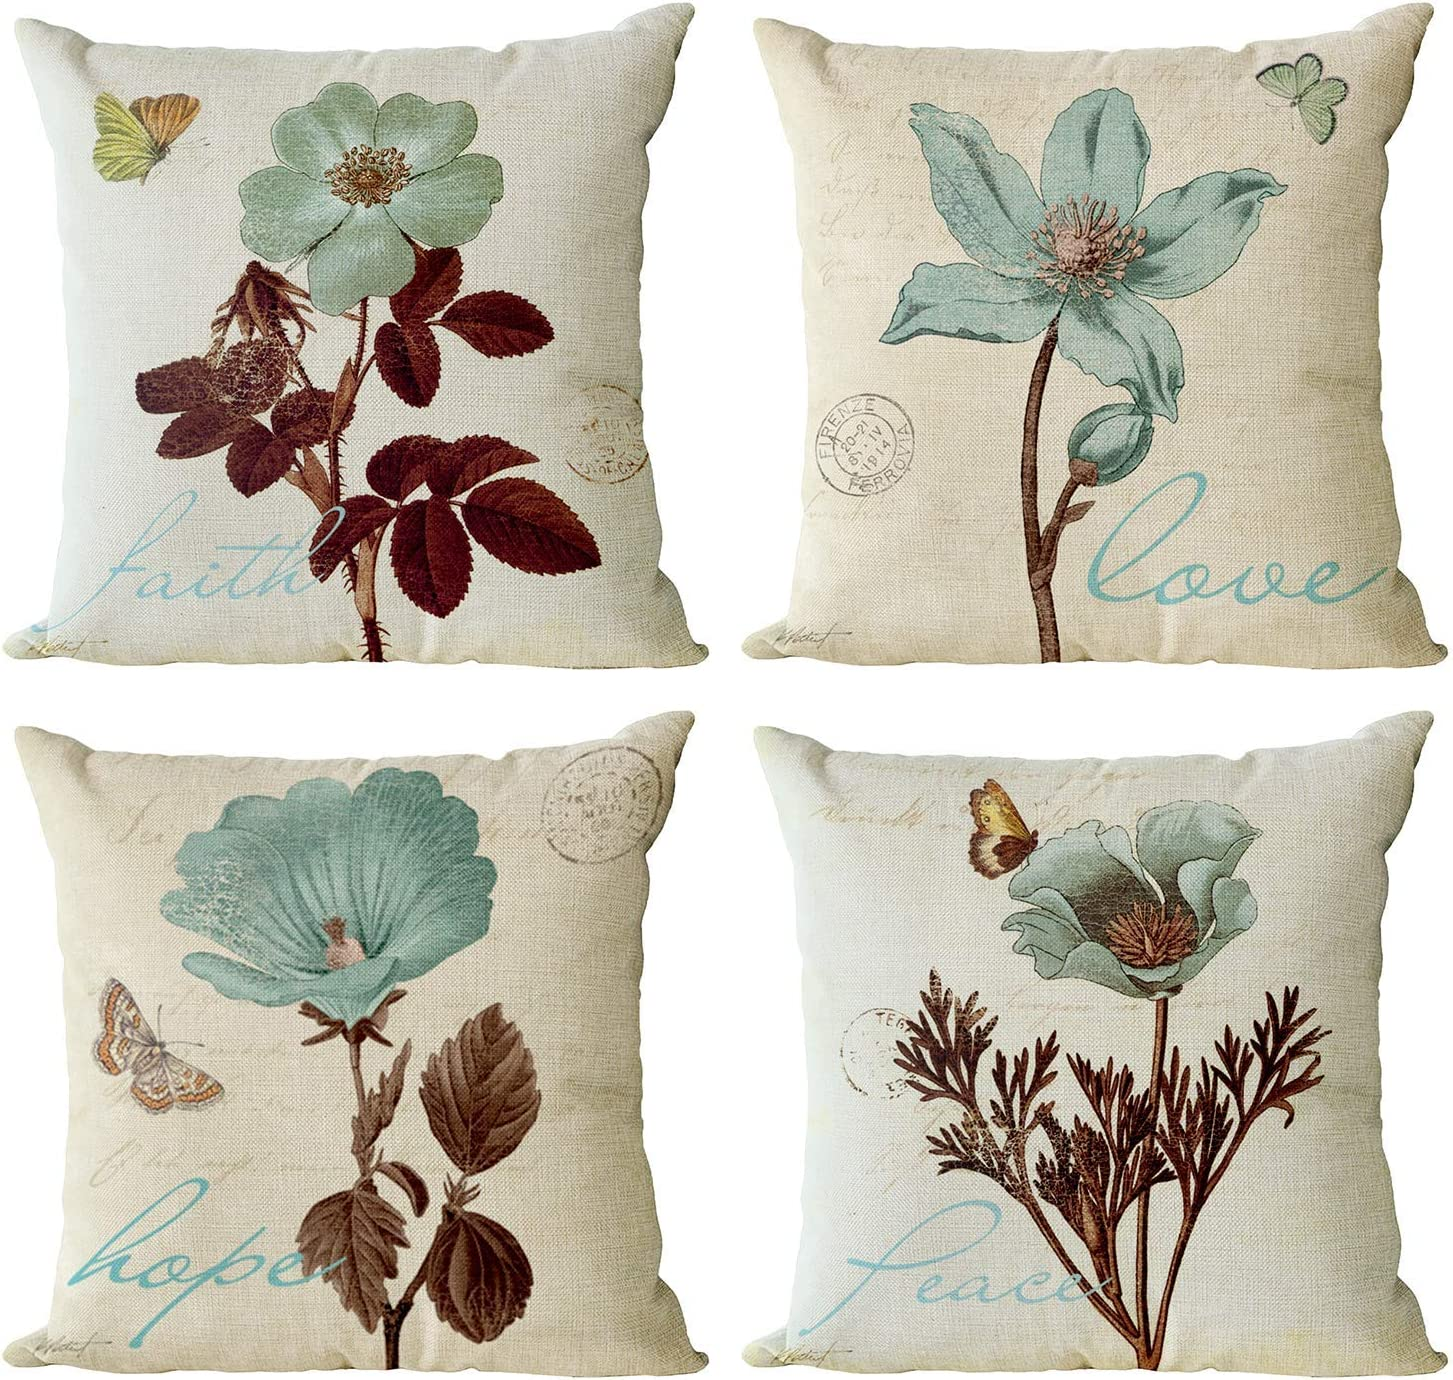 YeeJu Set of 4 Floral Decorative Throw Pillow Covers Plant Pillow Covers Cotton Linen Lotus Leaf Square Pillowcase Flower Outdoor Sofa Bedding Car and Home Decor Pillow Cushion Covers 12x12 Inch